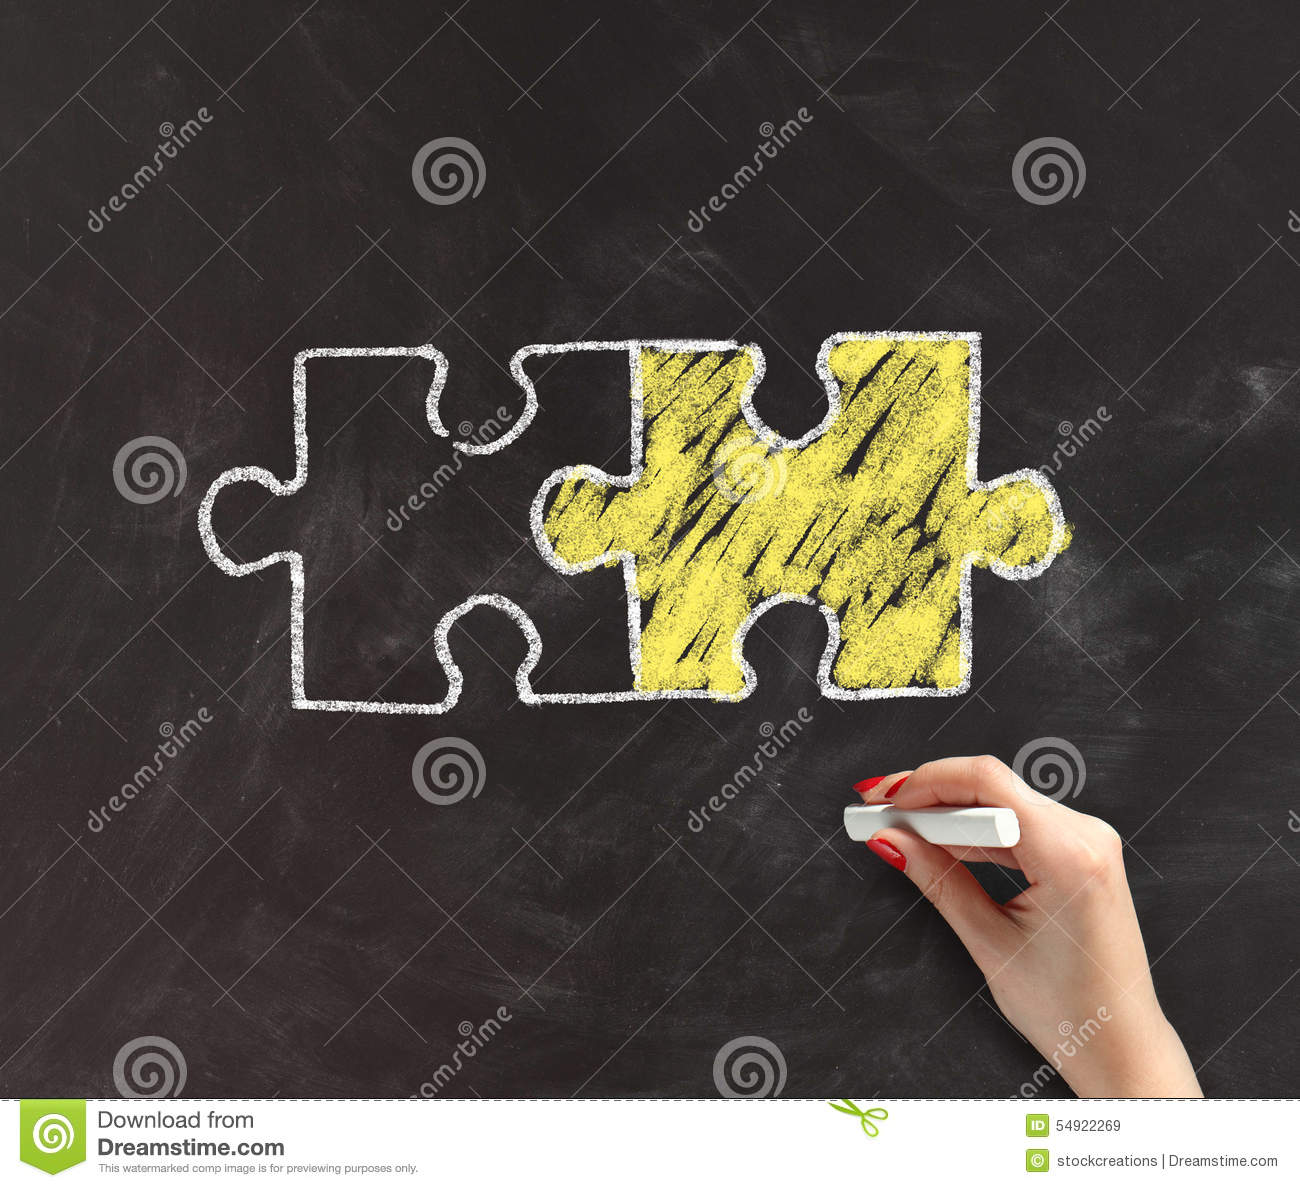 Scribble Drawing Crossword Clue : Hand drawing two matching puzzle pieces stock photo